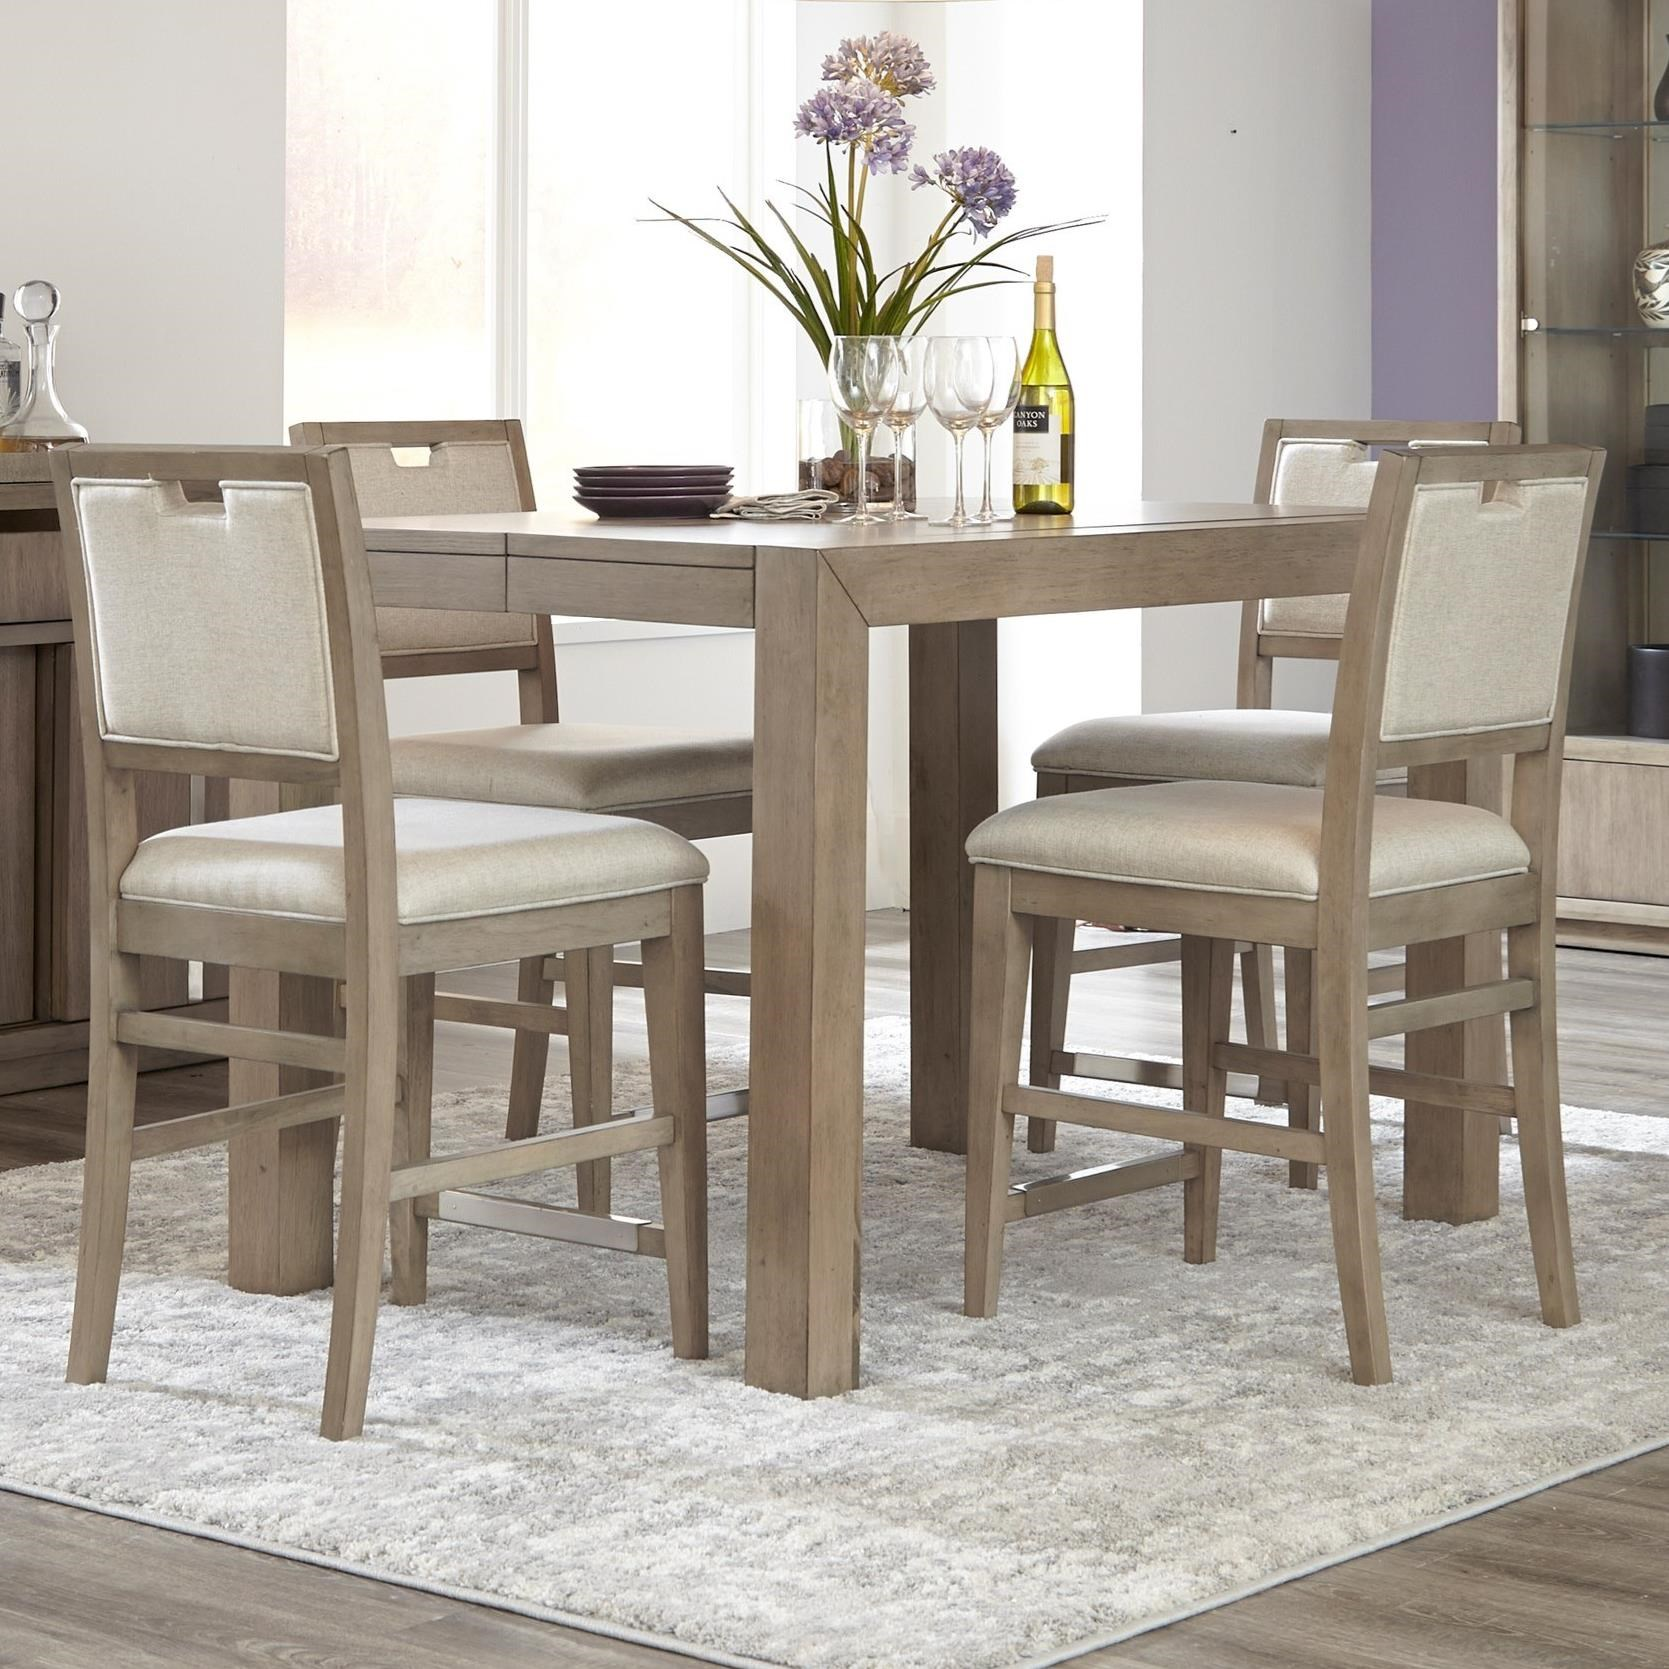 Melbourne 5 Piece Dining Package by Klaussner International at HomeWorld Furniture